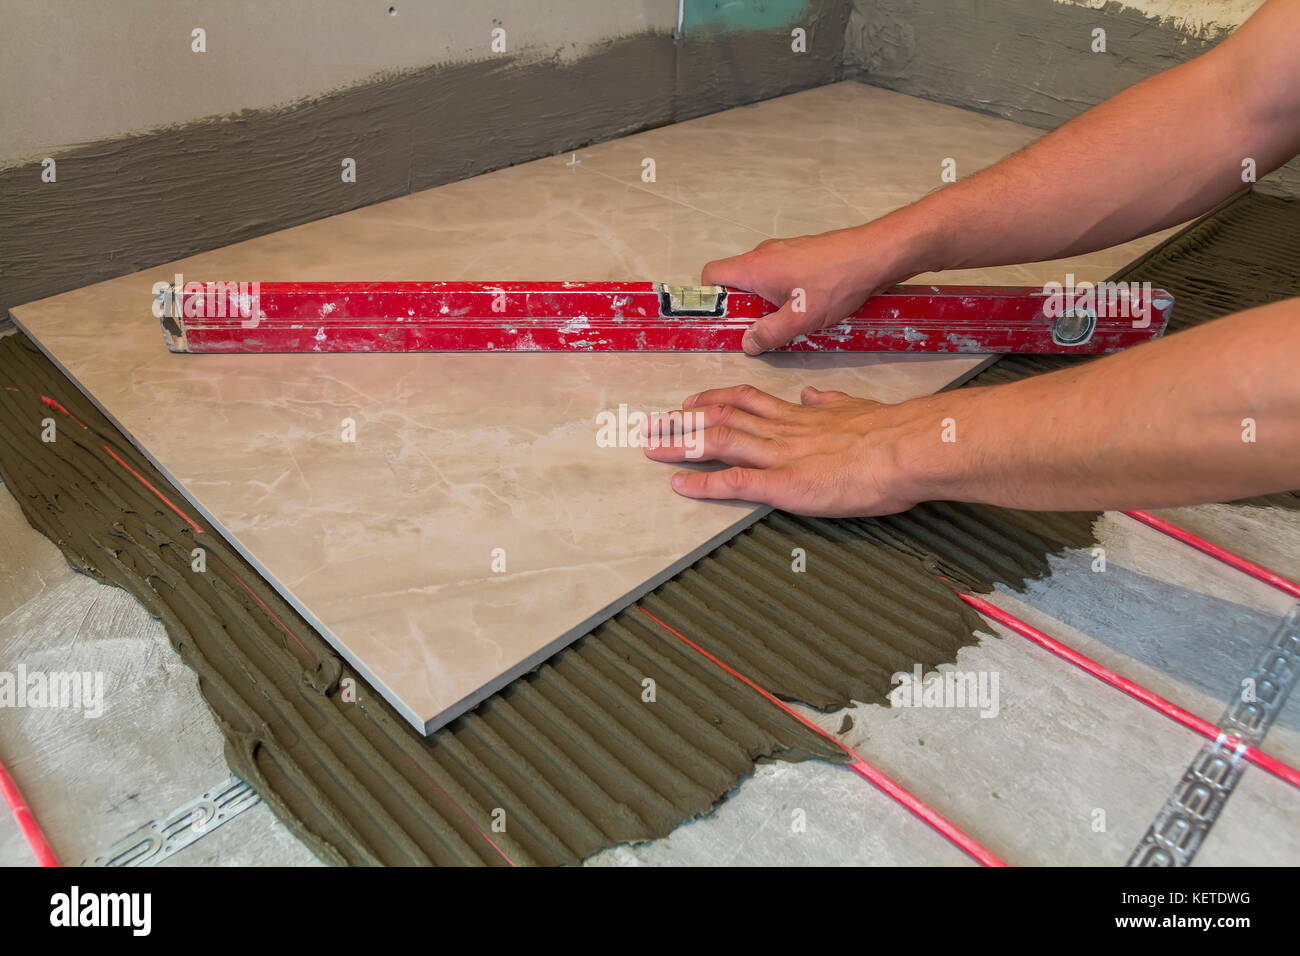 Workers hands with ceramic tiles and tools for tiler floor tiles workers hands with ceramic tiles and tools for tiler floor tiles installation home improvement renovation ceramic tile floor adhesive mortar le dailygadgetfo Images